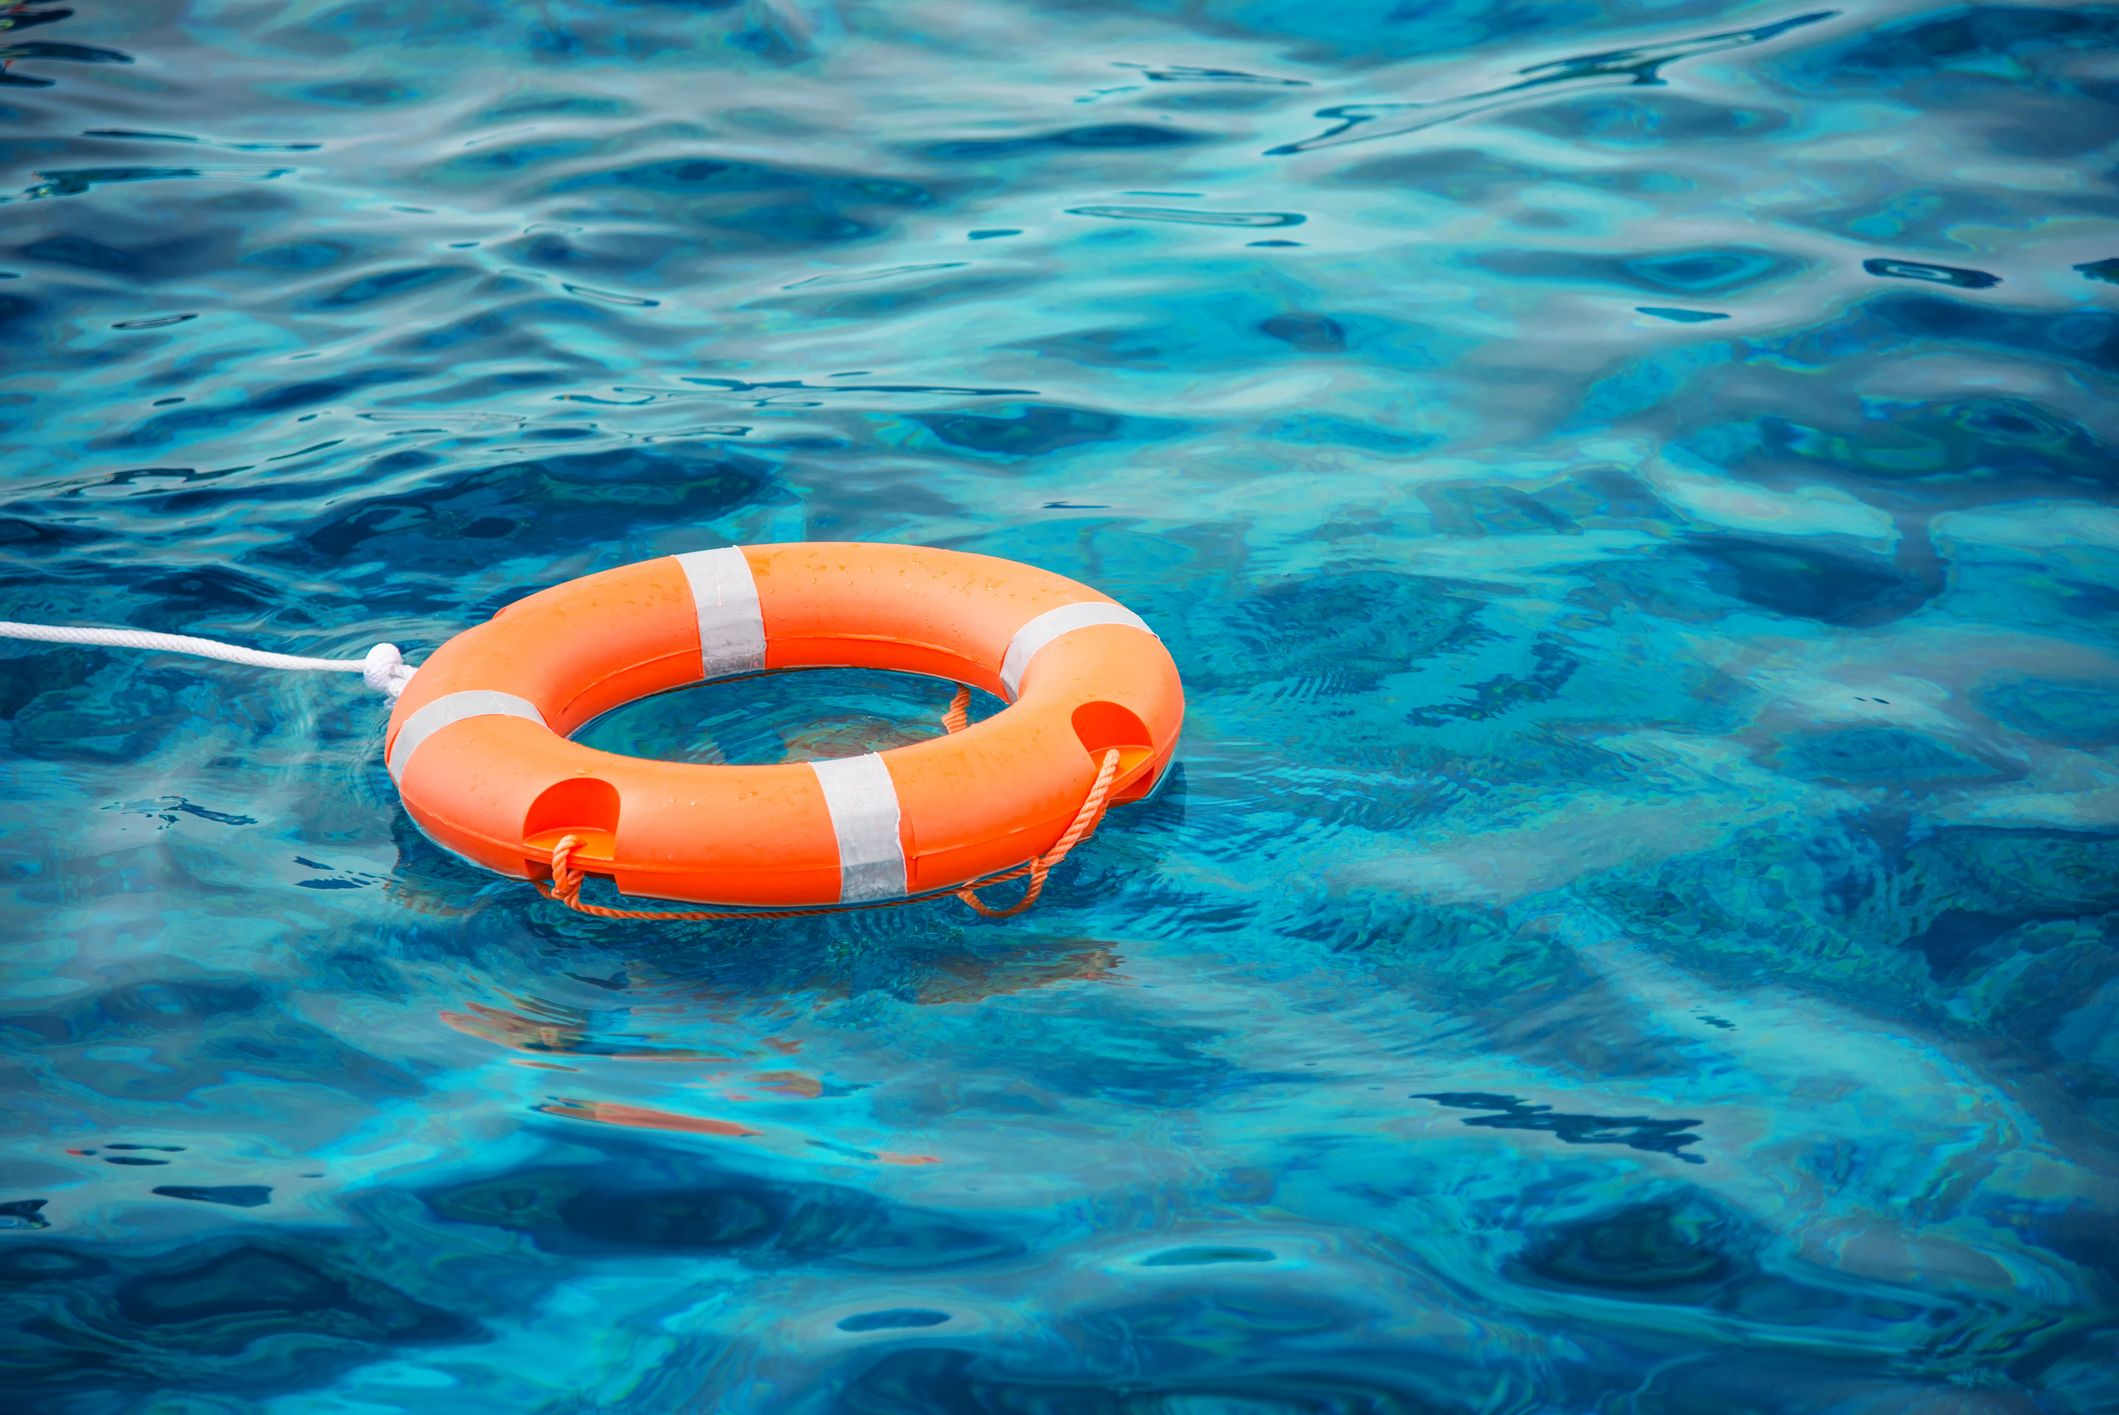 life saver floating in the ocean.